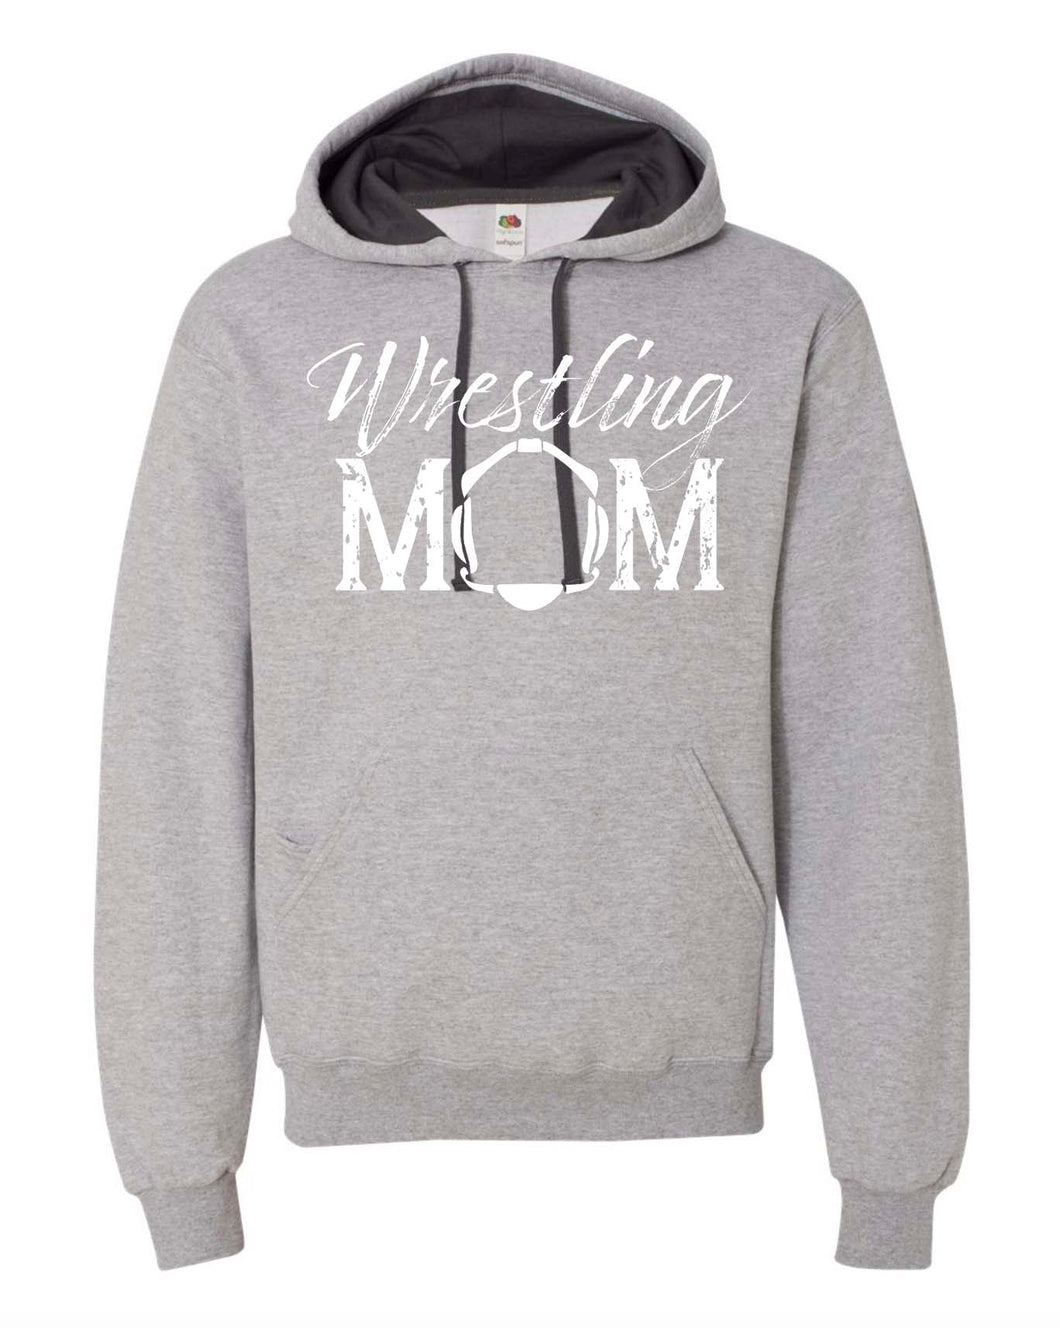 WRESTLING MOM WITH HEADGEAR HOODIE